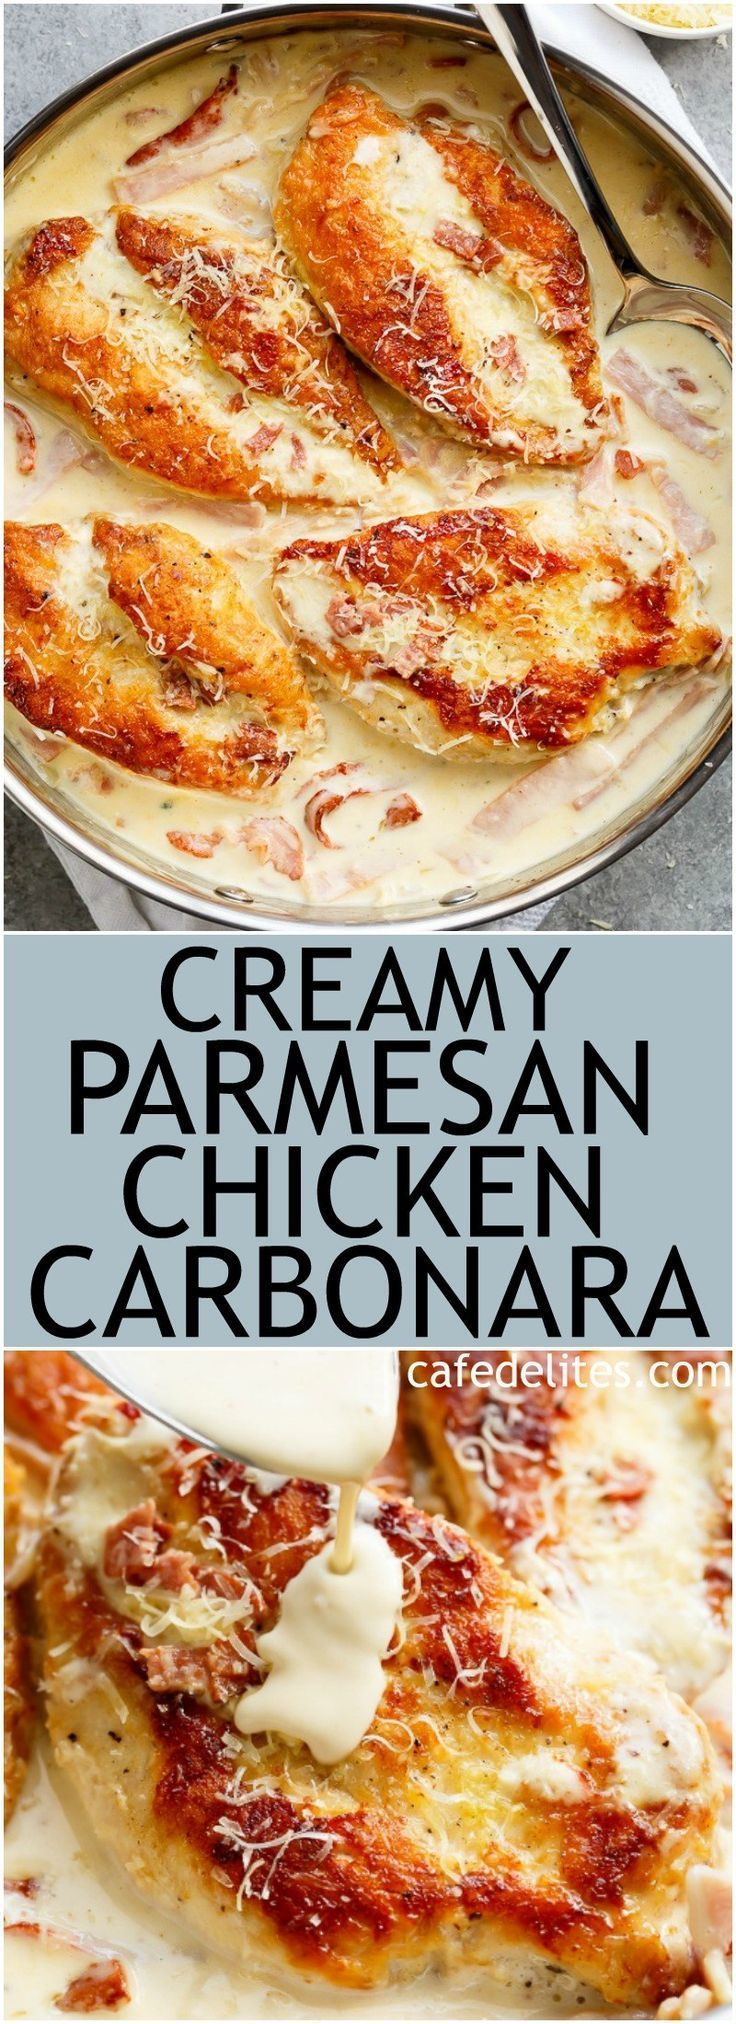 Creamy Parmesan Chicken Carbonara is the ultimate twist! Crispy, golden chicken fillets in a carbonara inspired sauce for a new favourite chicken recipe!   https://cafedelites.com